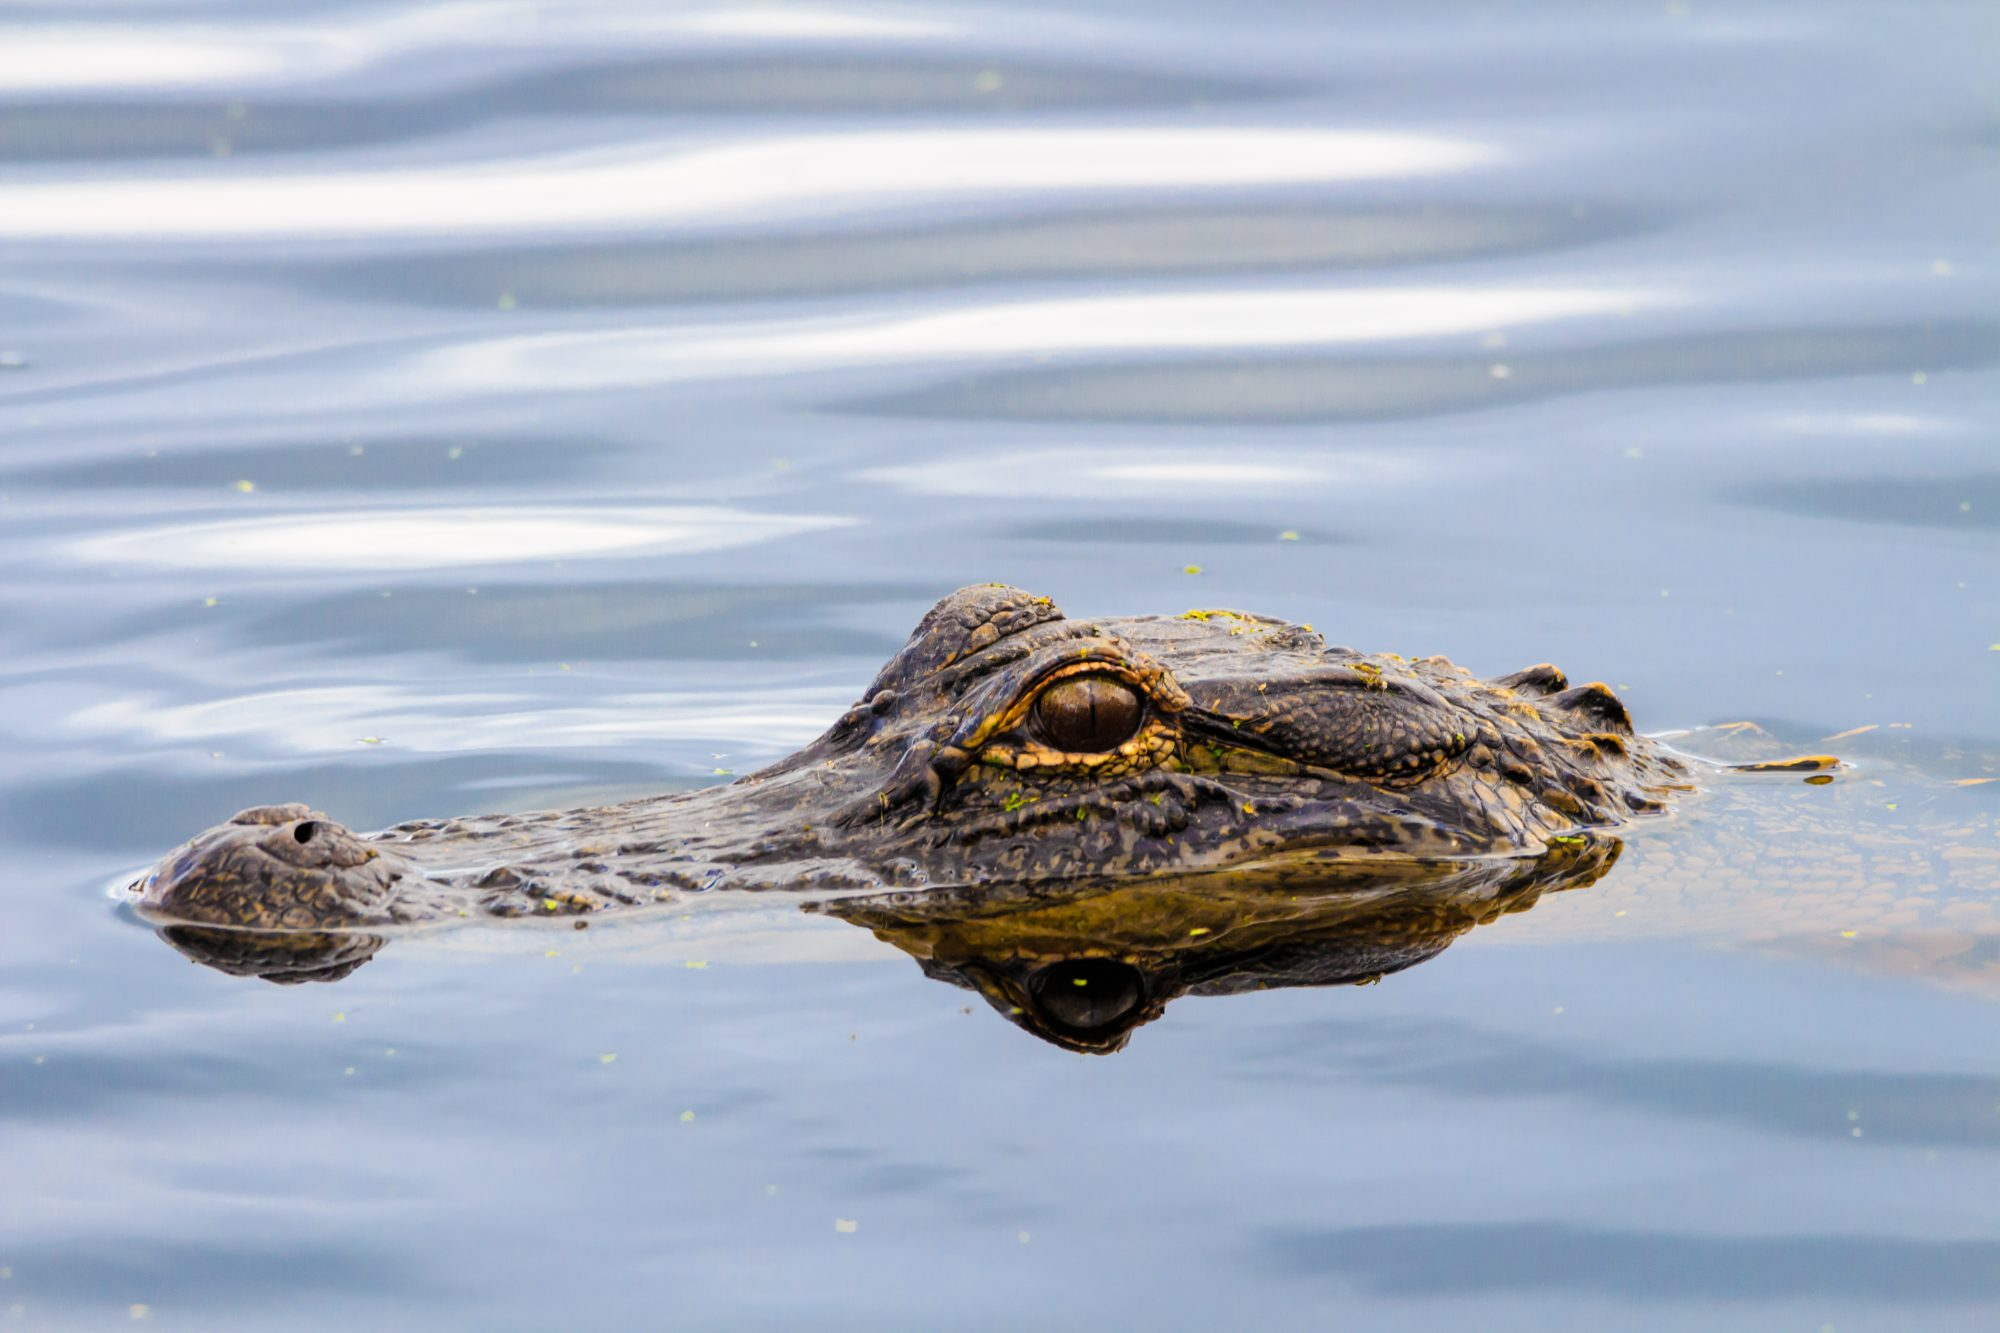 Alligator in Panama City Beach, Florida